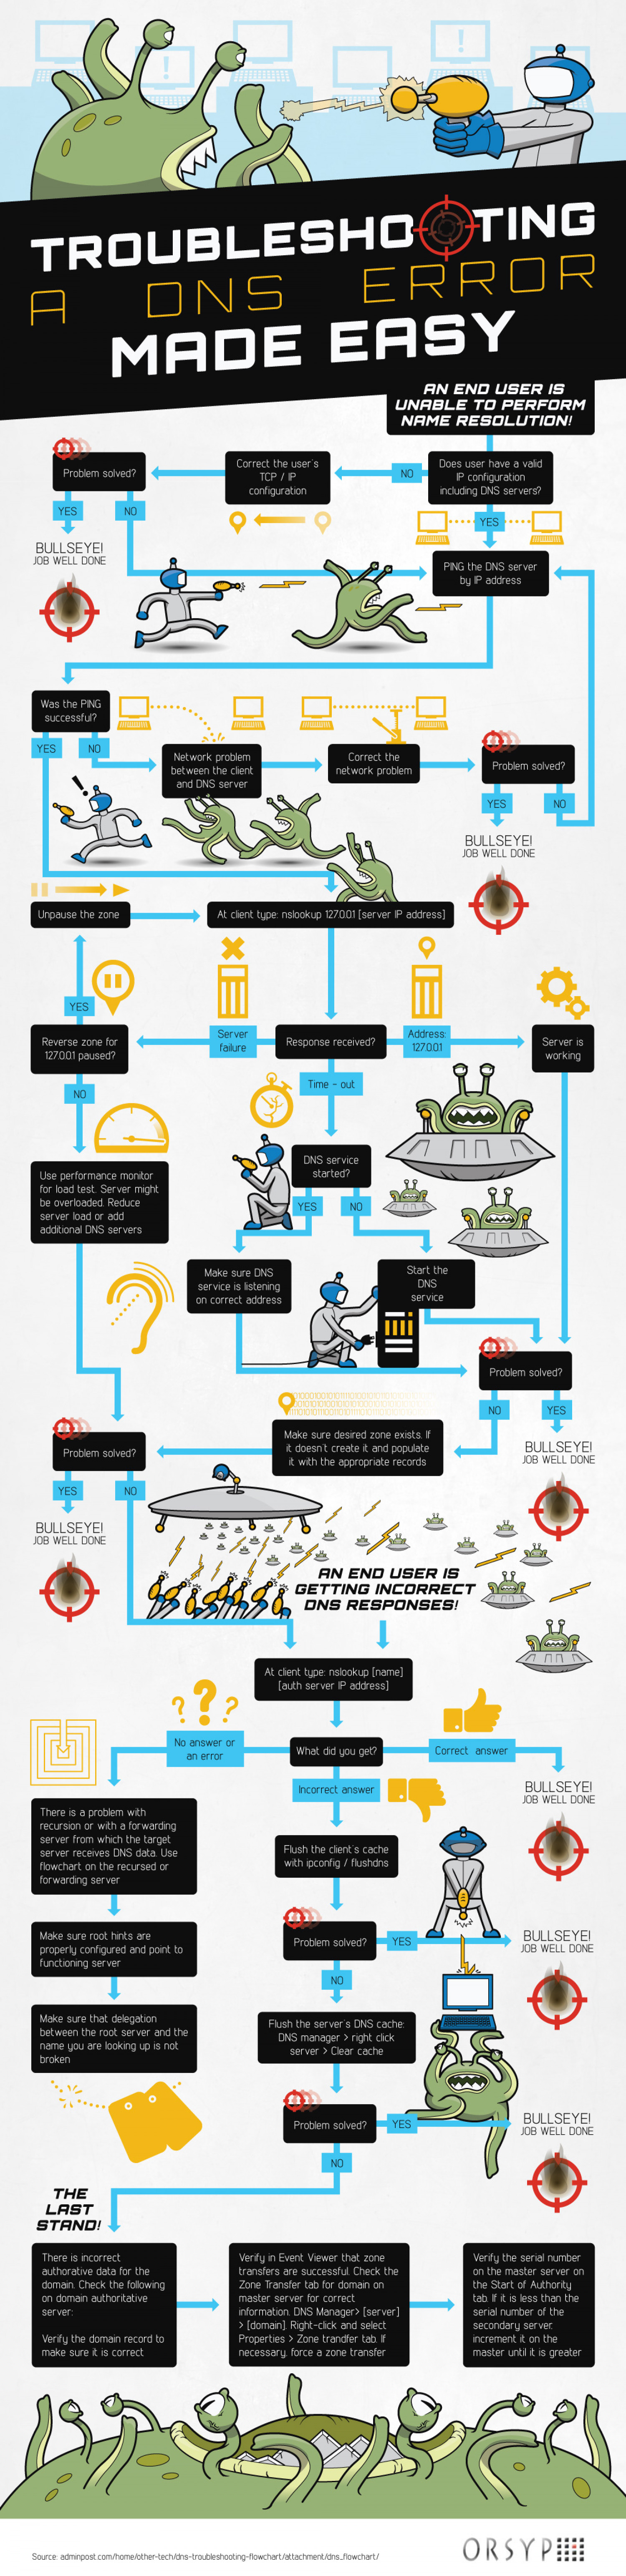 How to Troubleshoot DNS Problems Infographic